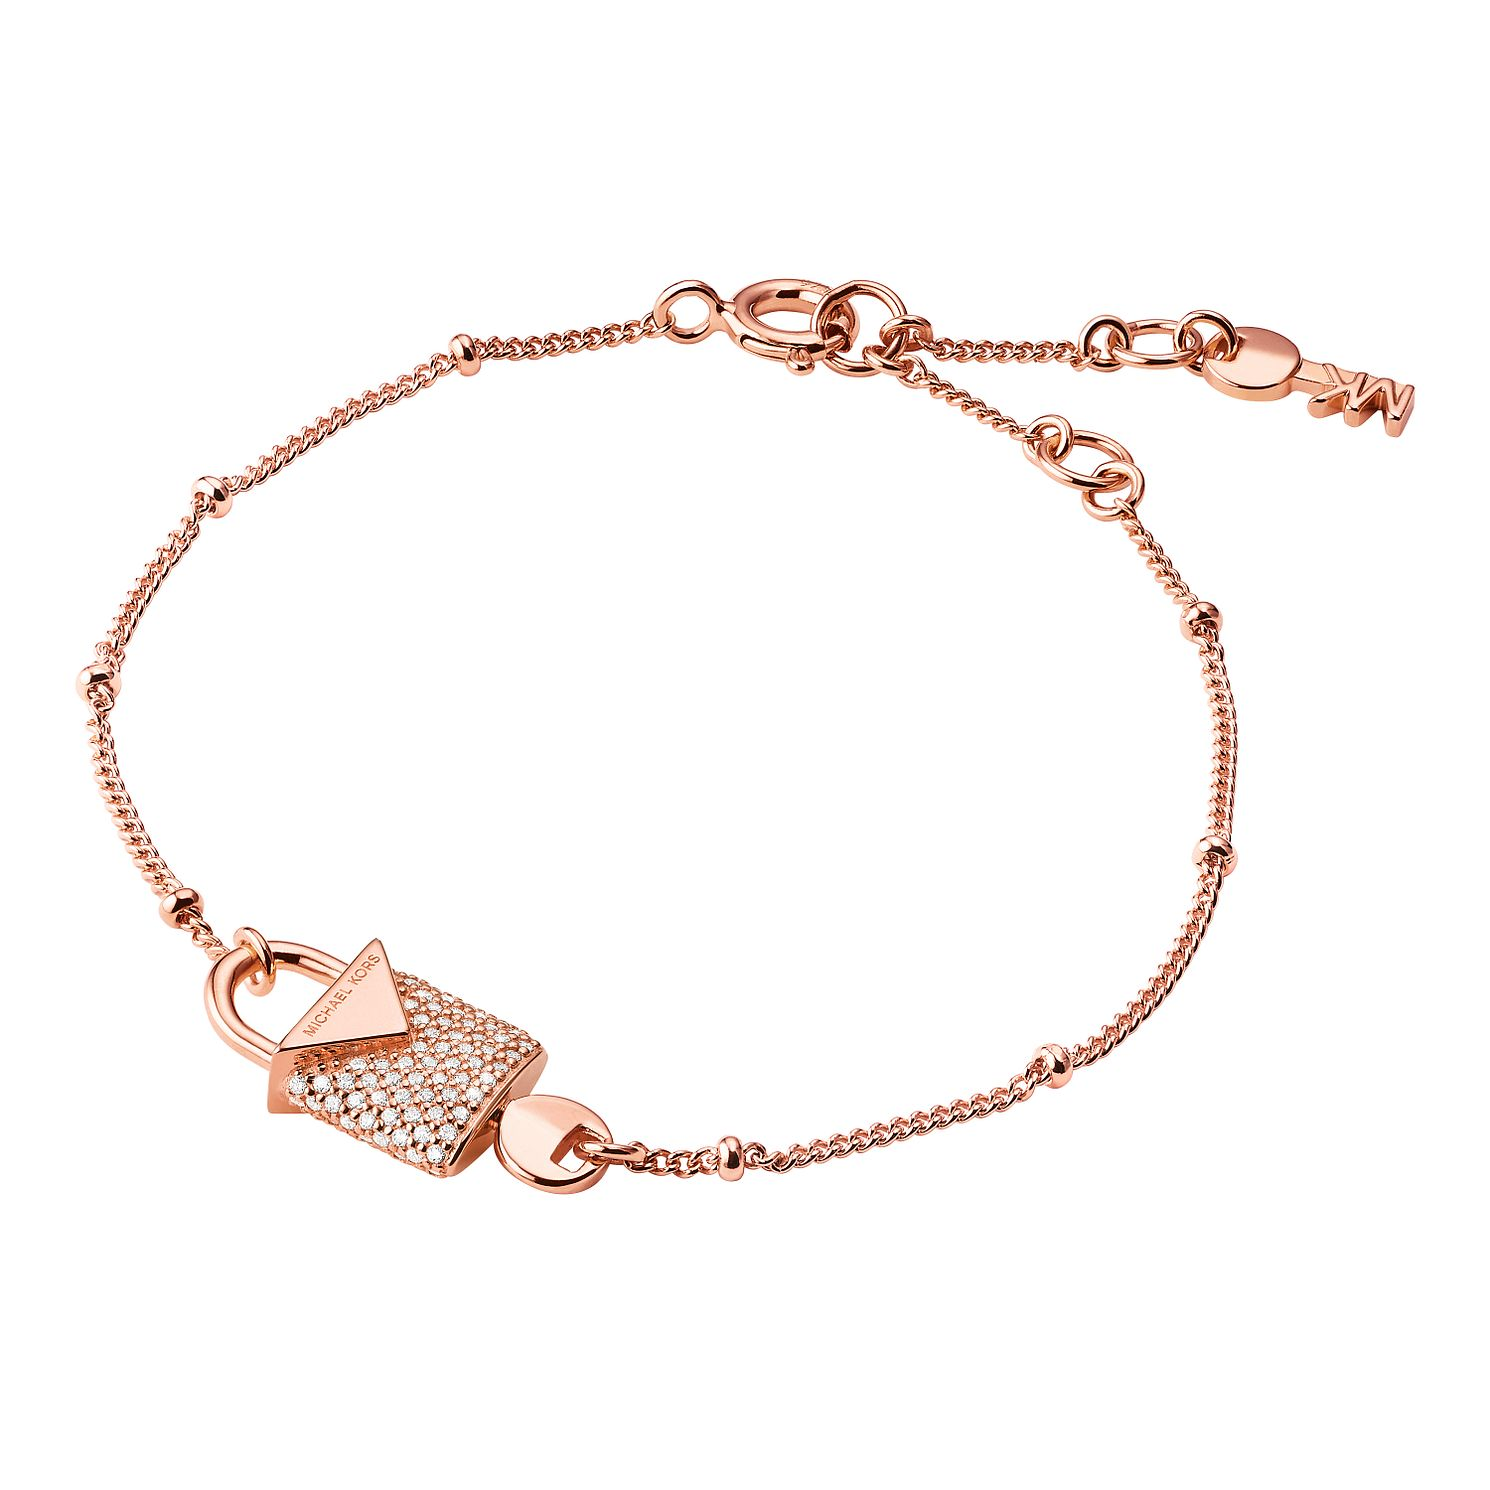 Michael Kors 14ct Rose Gold Plated Kors Colour Bracelet - Product number 9801189